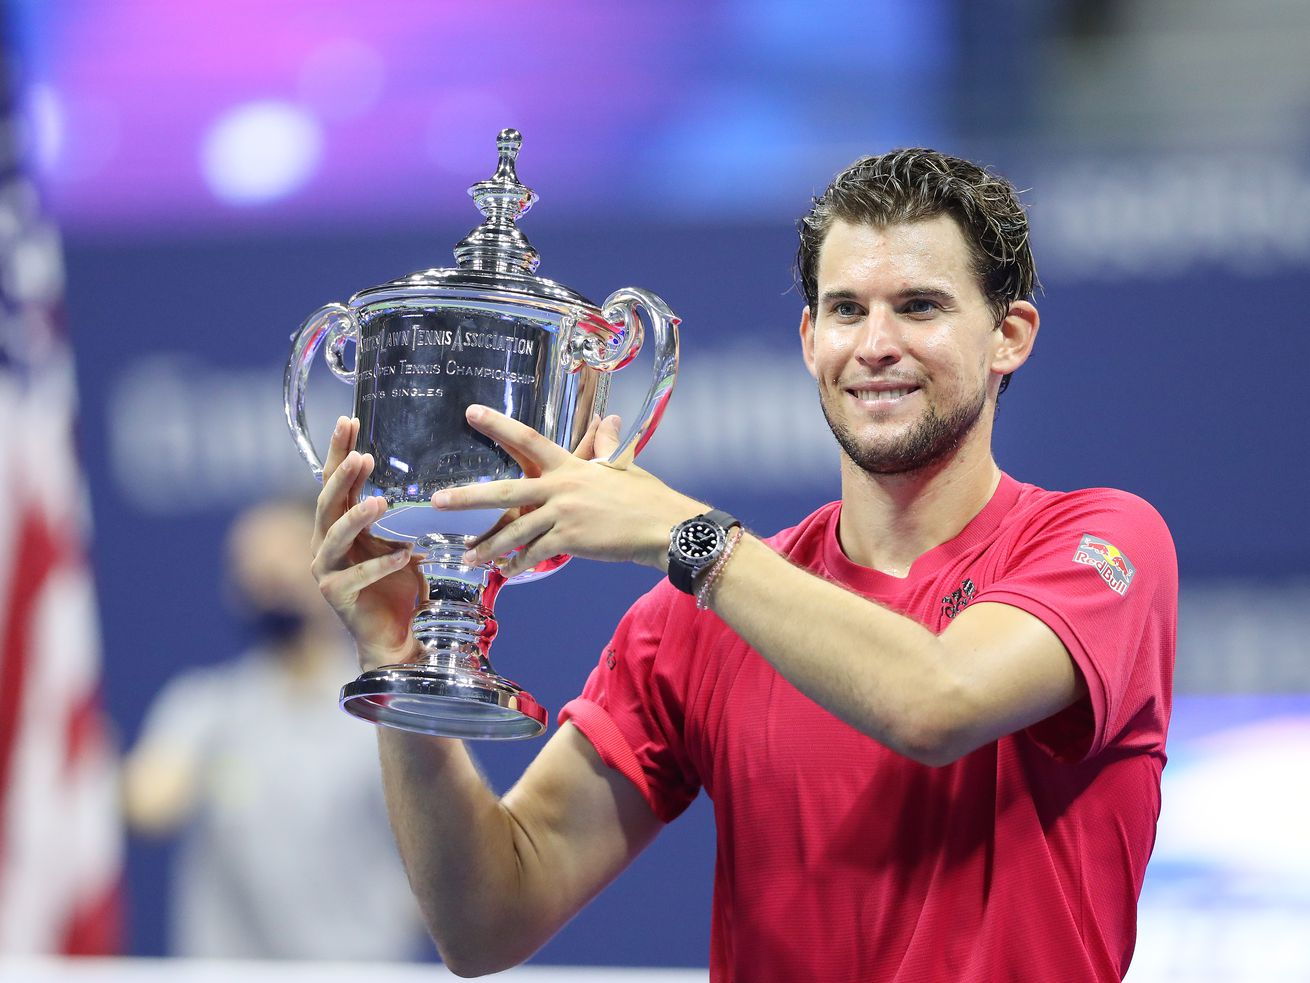 Dominic Thiem comes back from 2 sets down to win U.S. Open